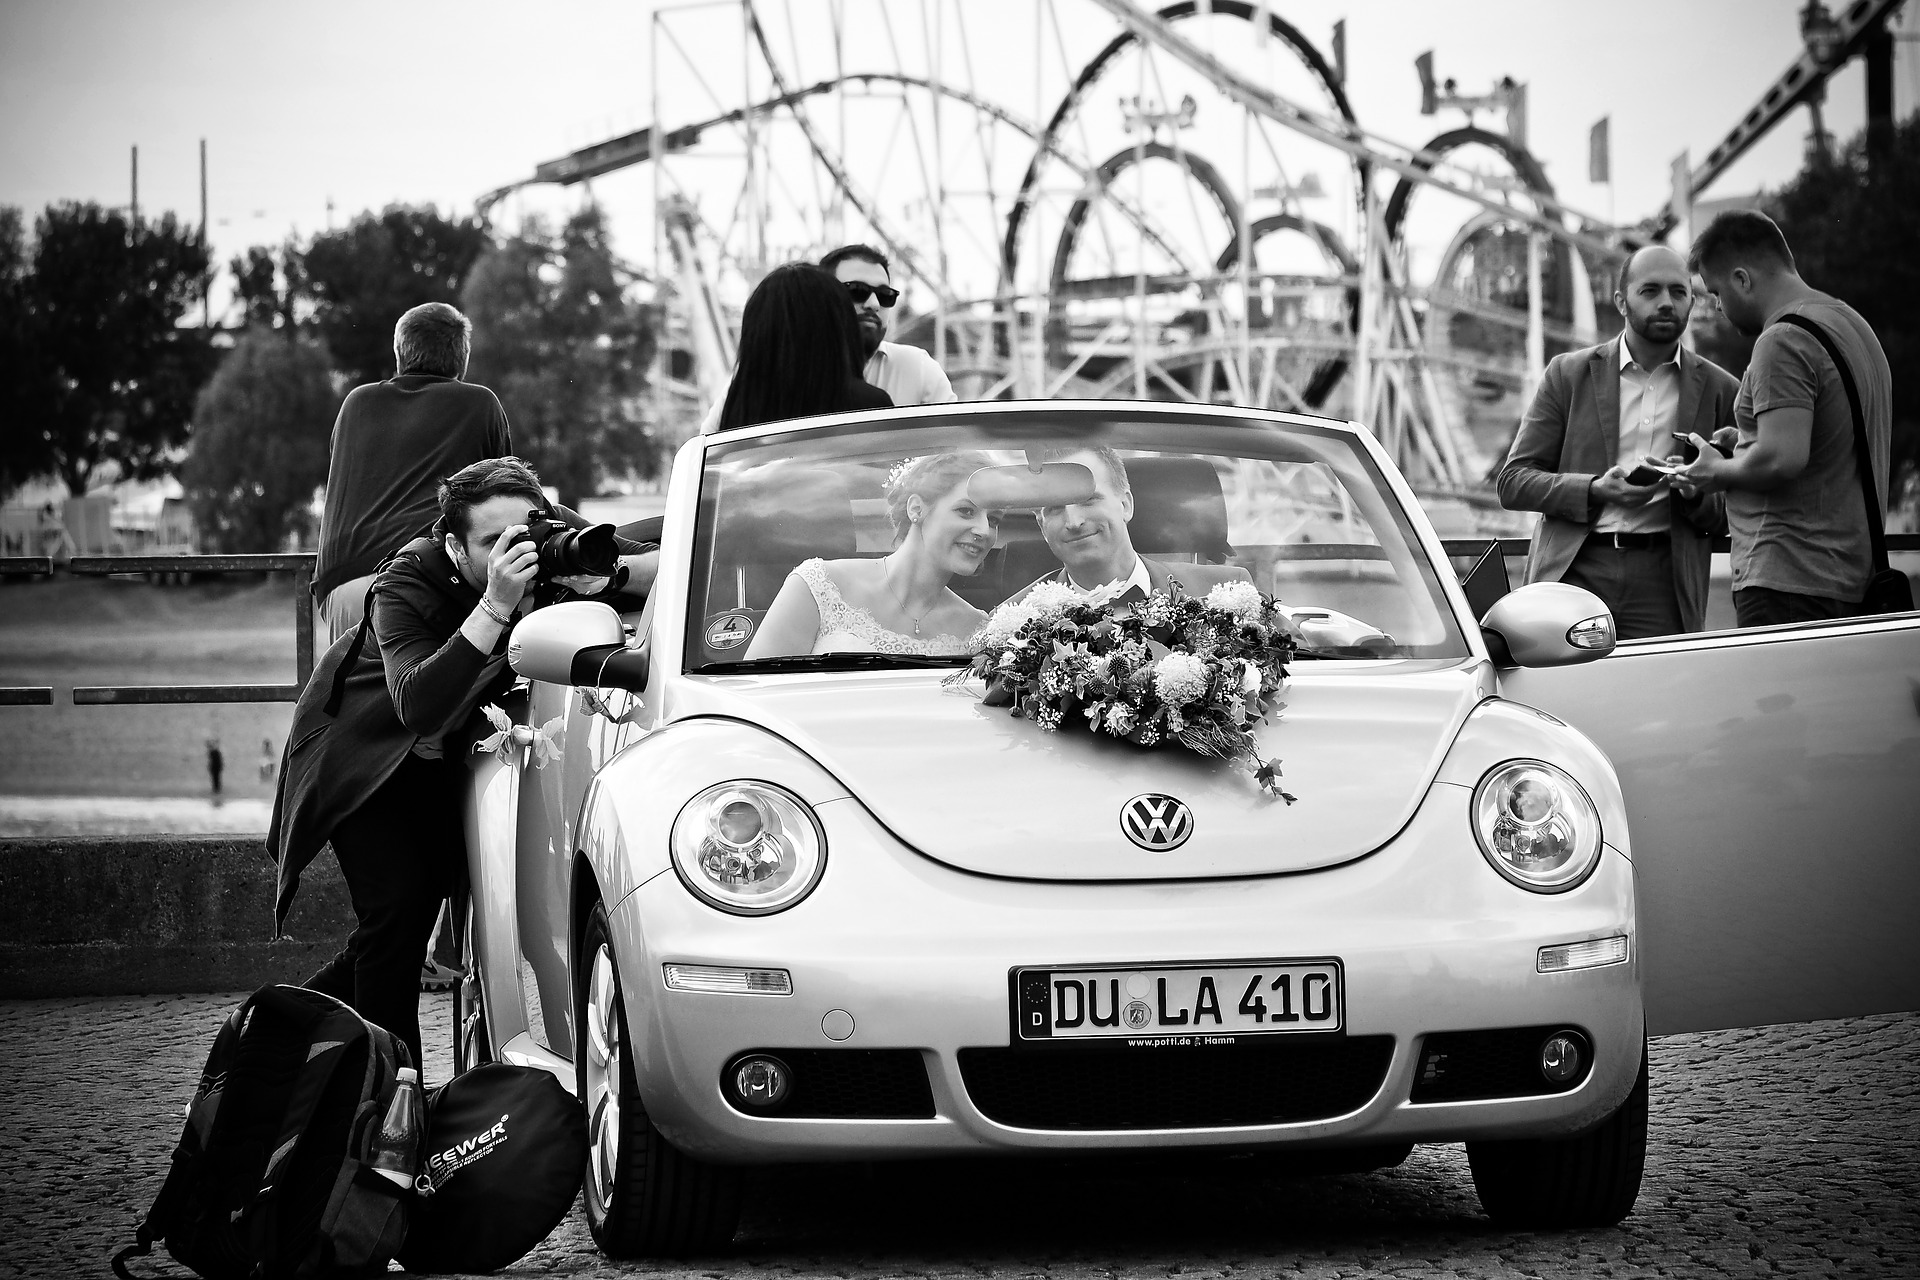 just married couple in decorated car while photographer takes wedding photos of them